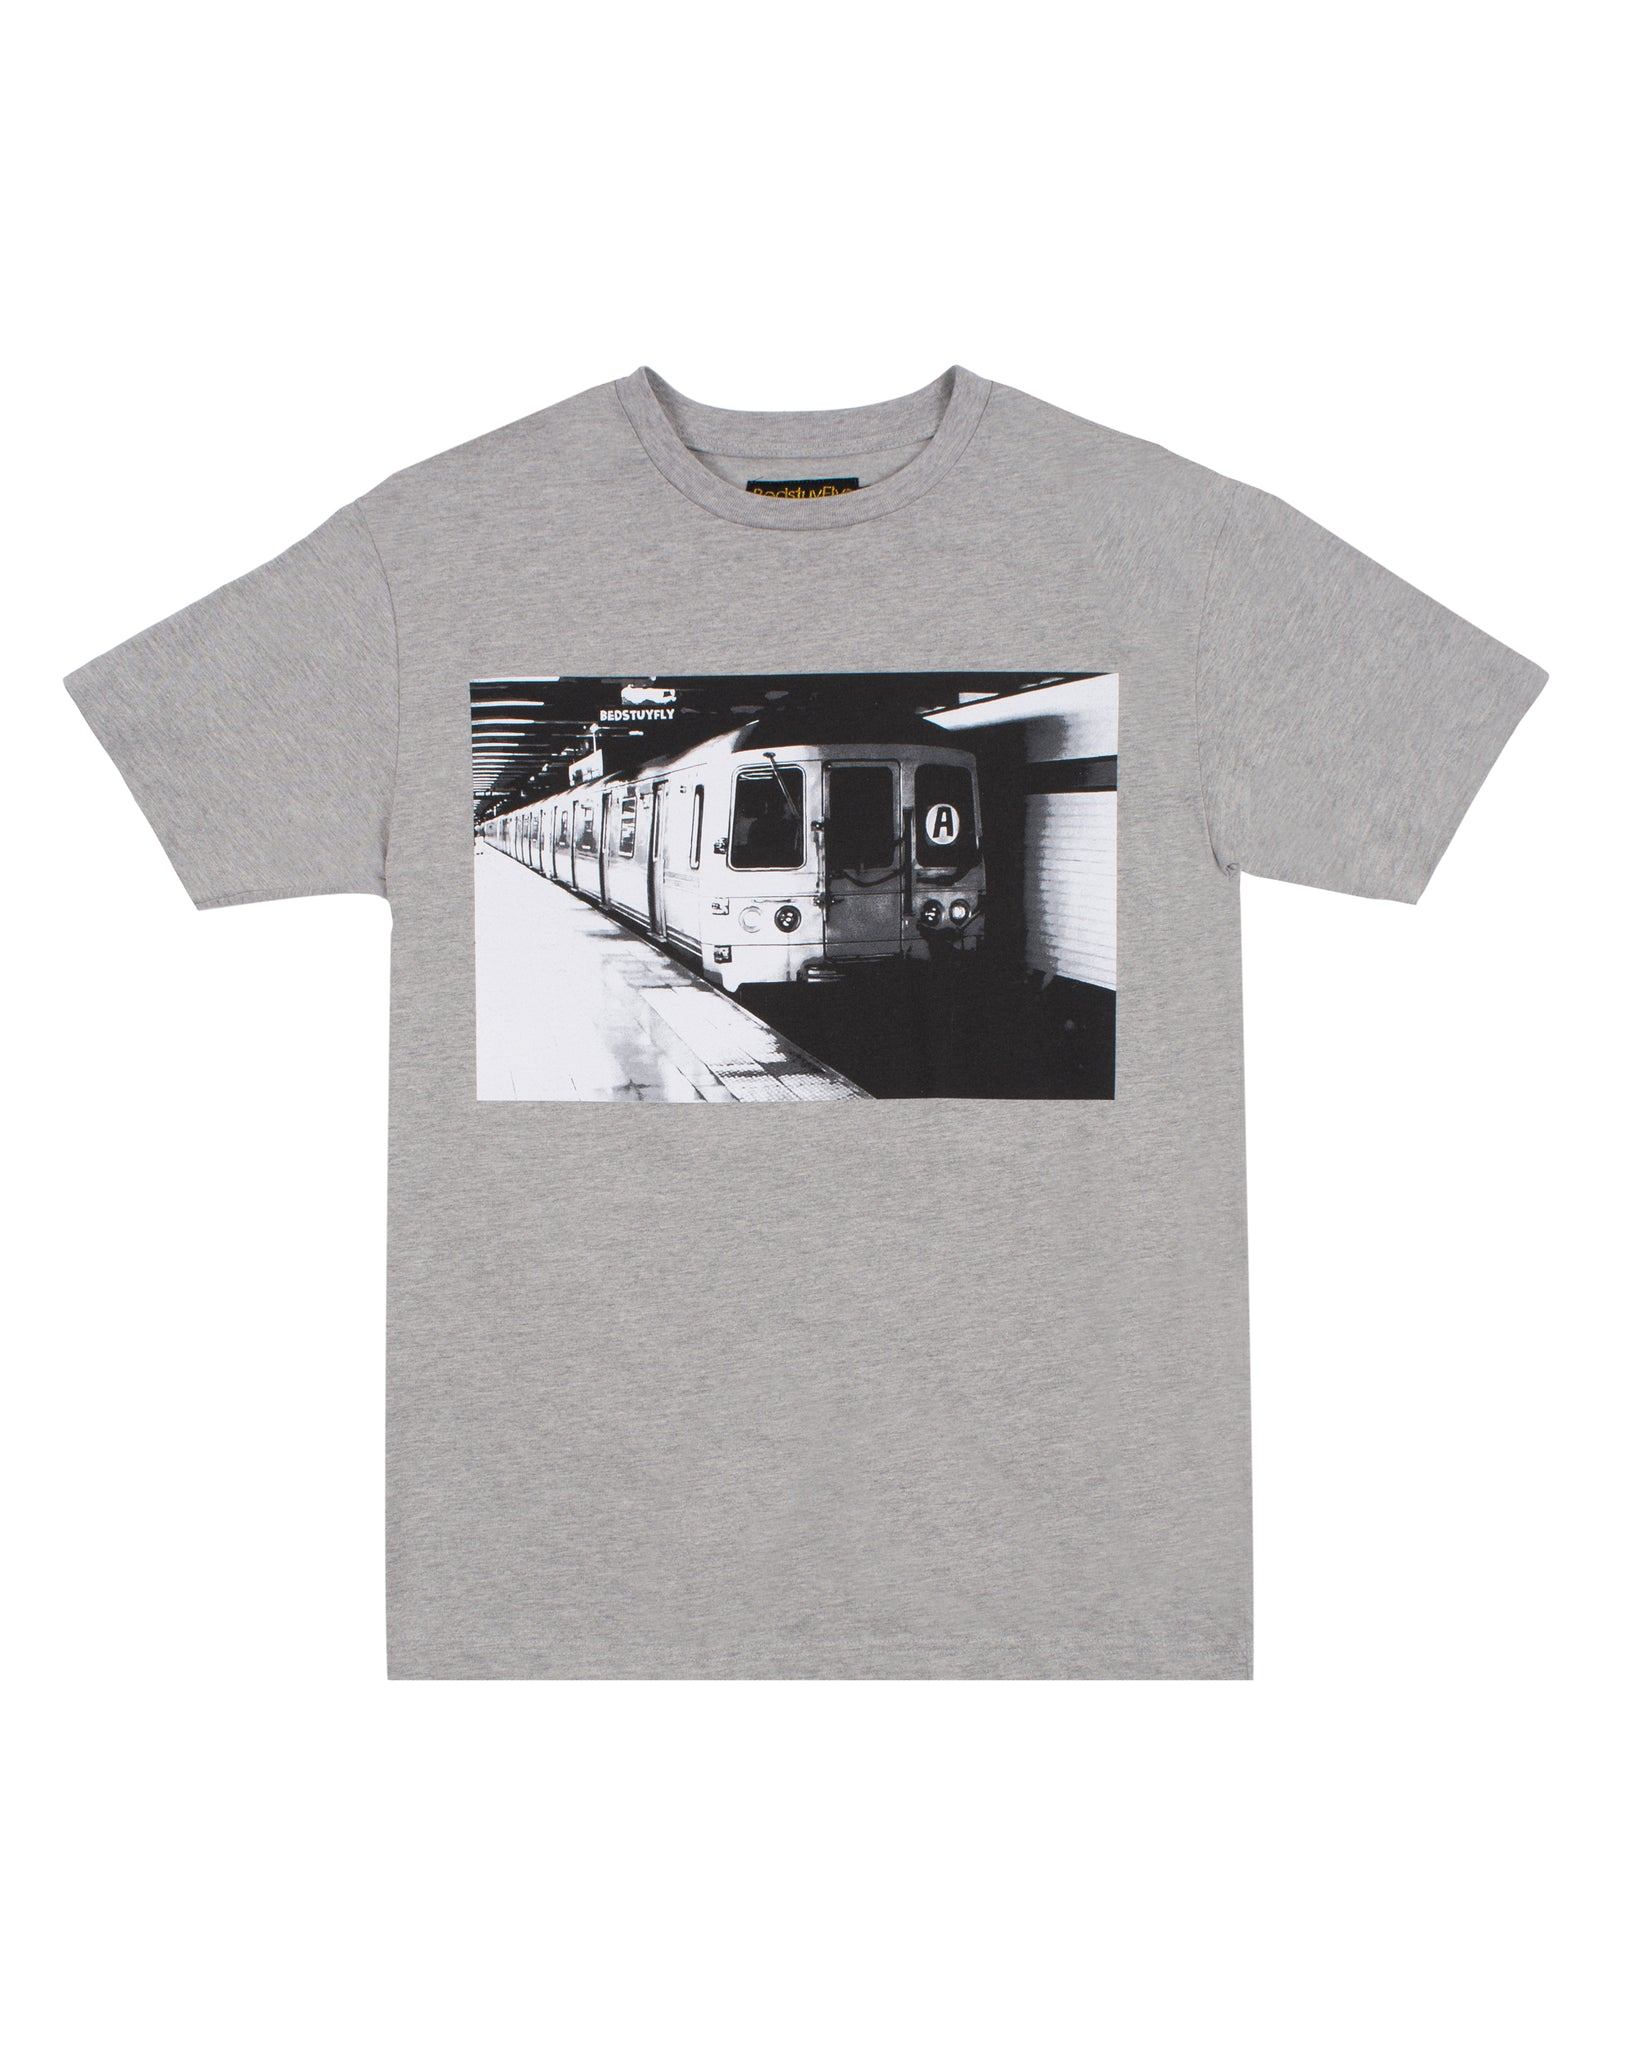 A-Train T-Shirt (Grey)